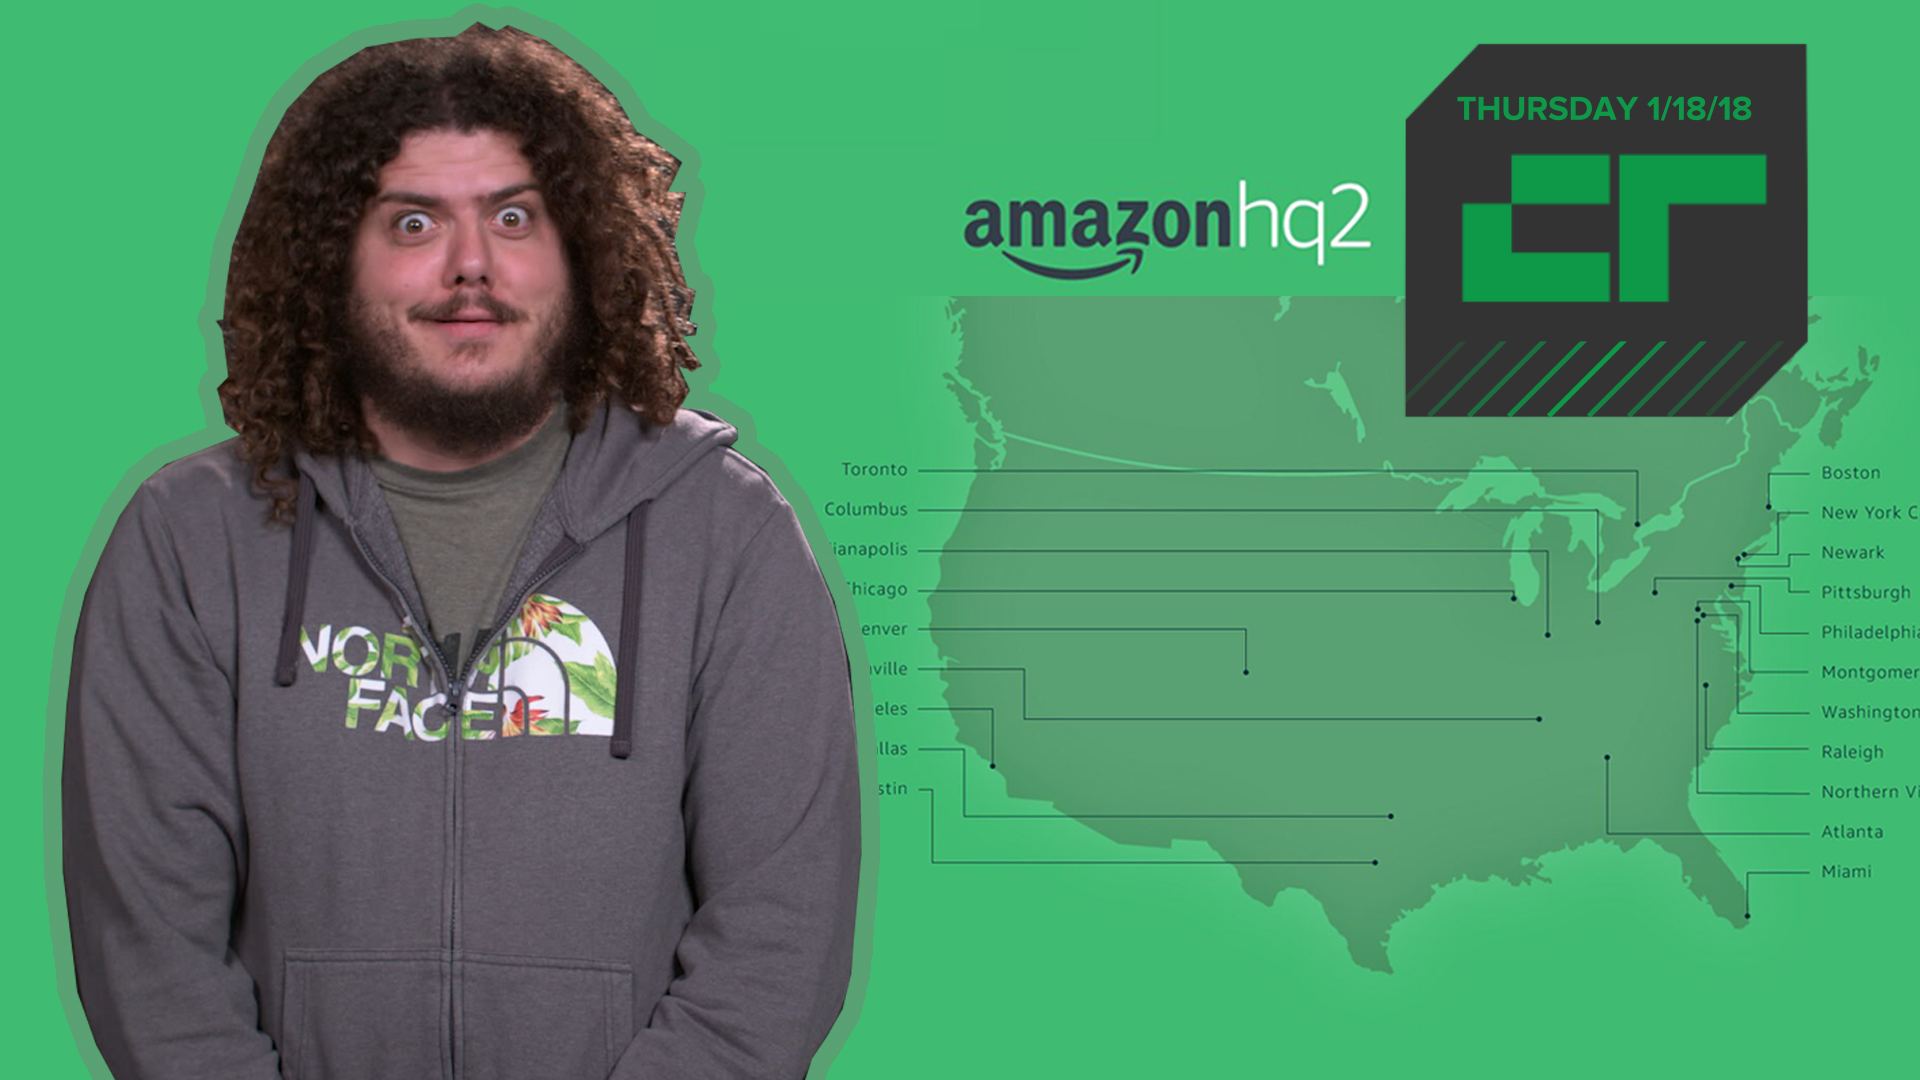 Amazon reveals 20 finalists for second HQ | Crunch Report